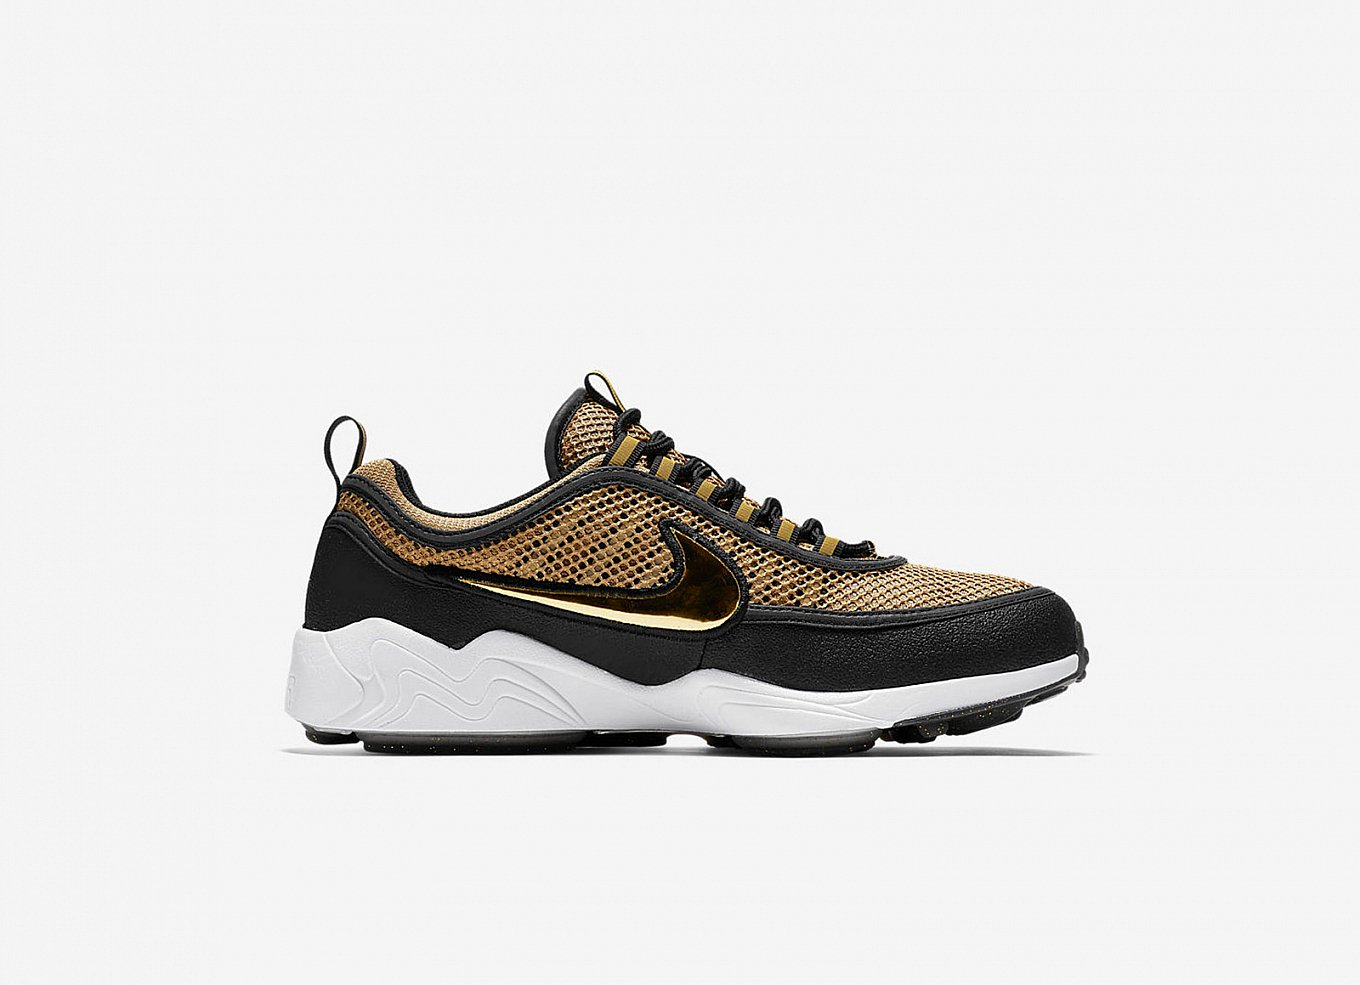 nikelab-air-zoom-spiridon-metallic-gold-gessato-6